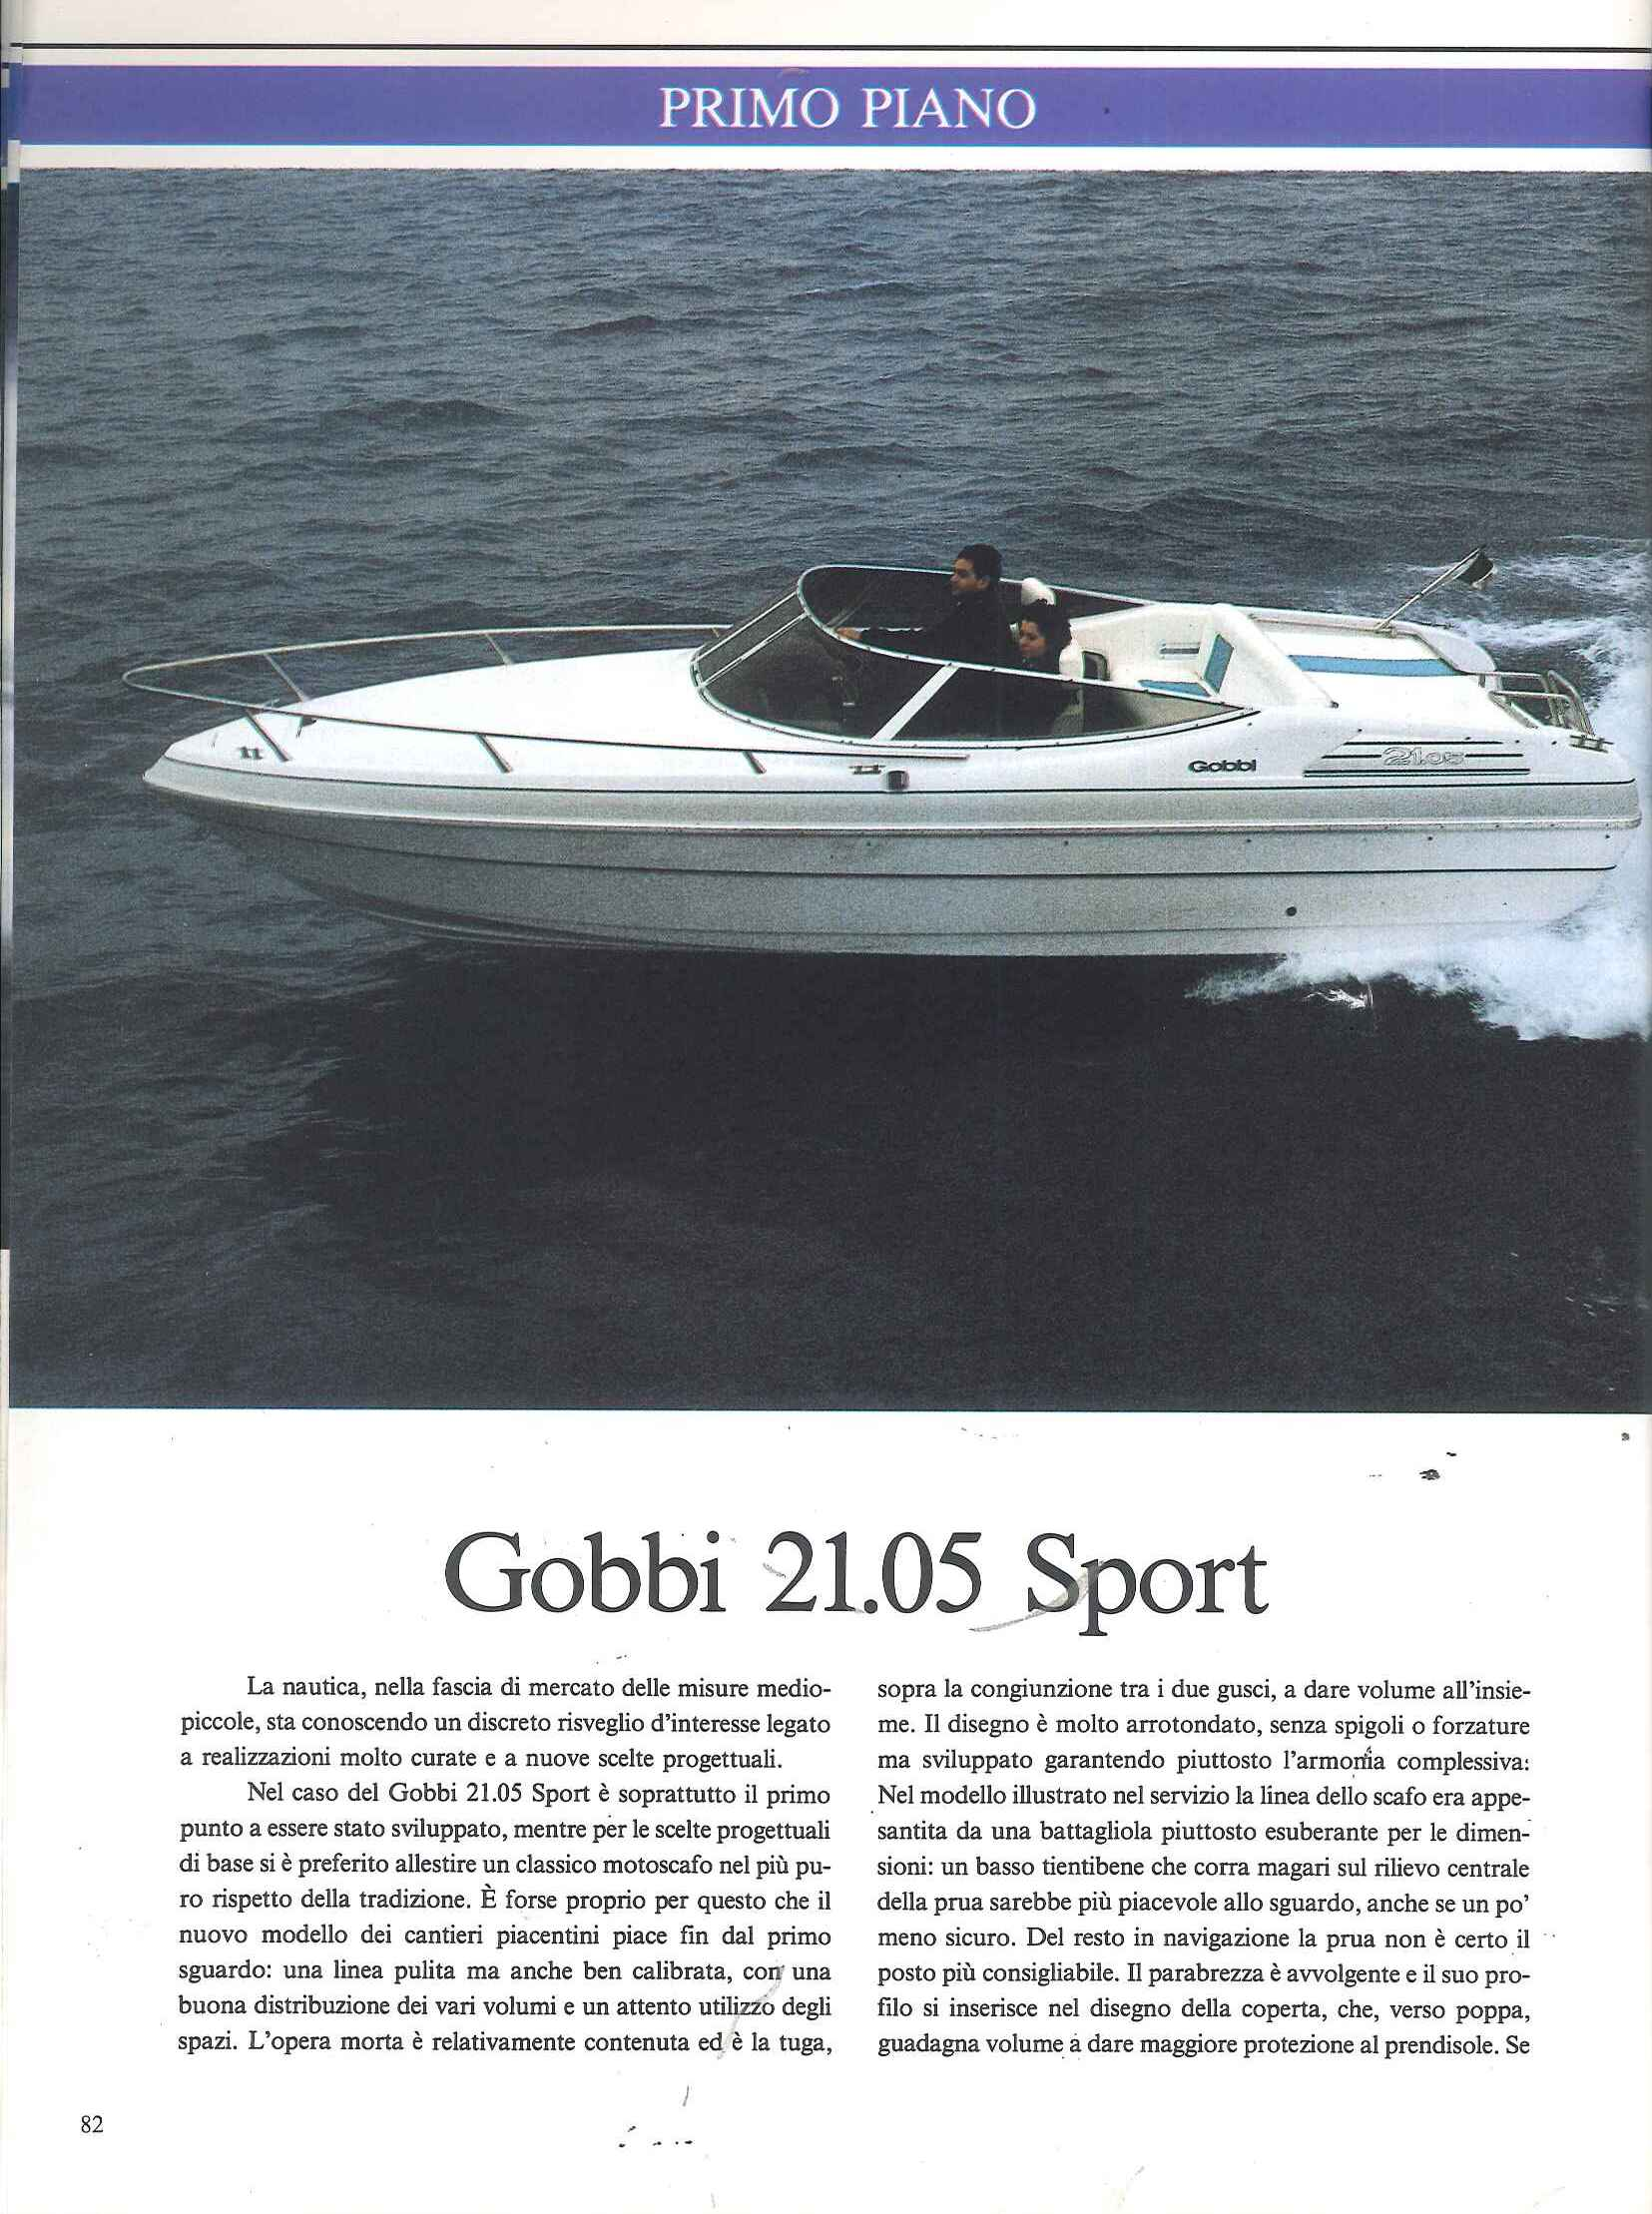 1989 04 PRESS GOBBI 21.05 SPORT UOMO MARE 129 (01).jpg